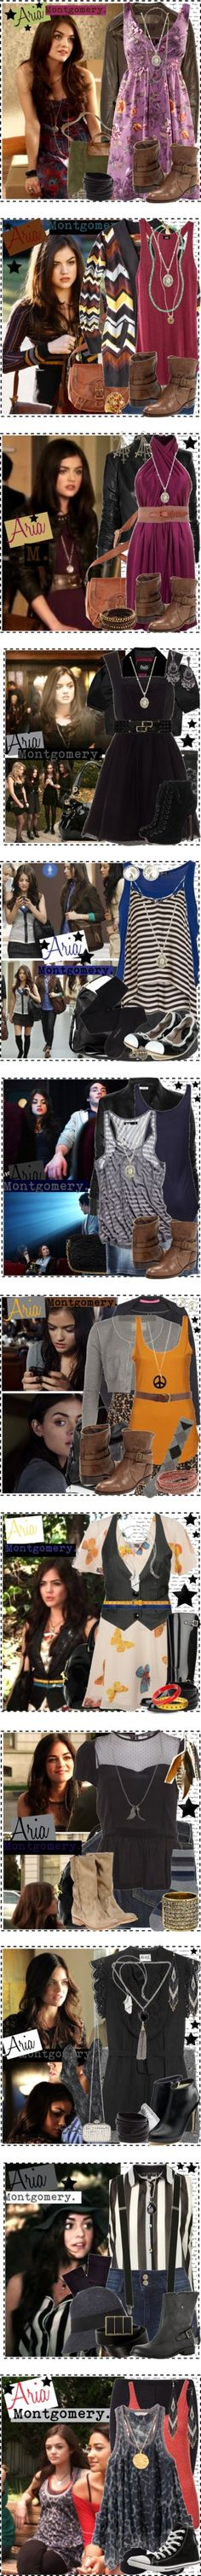 """""""Aria Montgomery [Pretty Little Liars]."""" by silver-screen-style ❤ liked on Polyvore"""